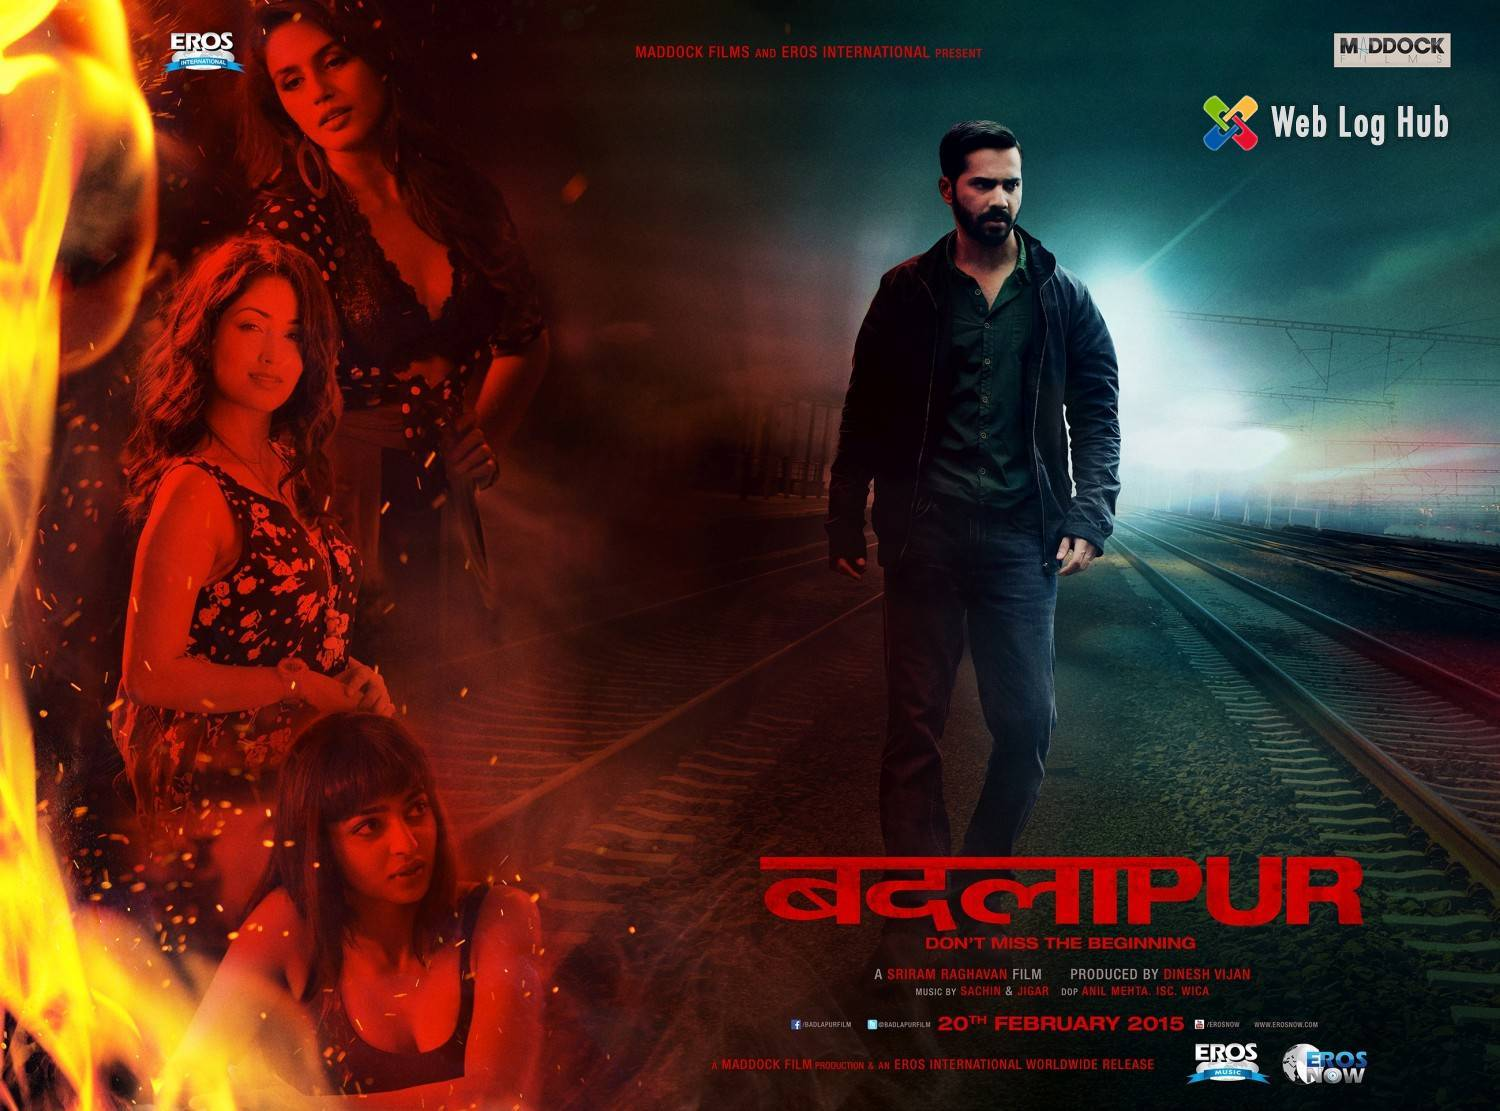 Badlapur wins praise from the industry - Web Log Hub